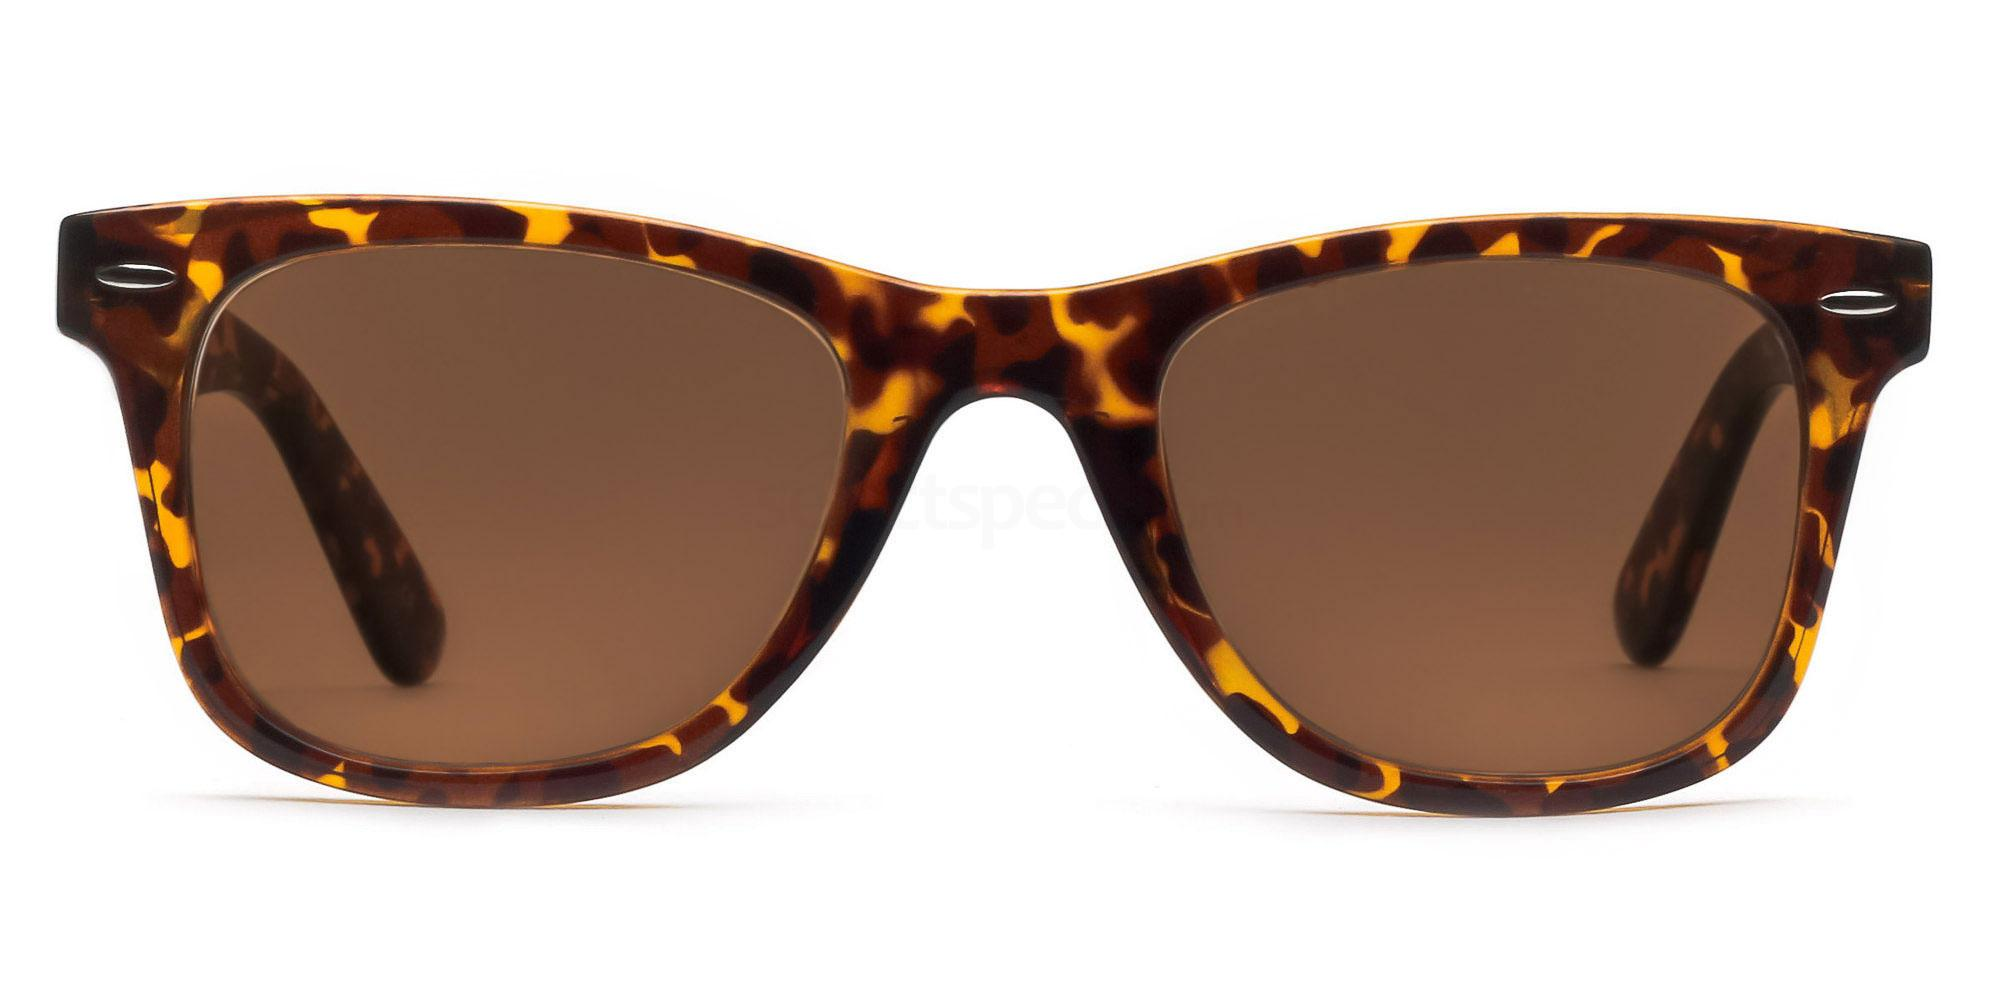 C04 Dark Brown P2429 - Havana (Sunglasses) Sunglasses, Savannah